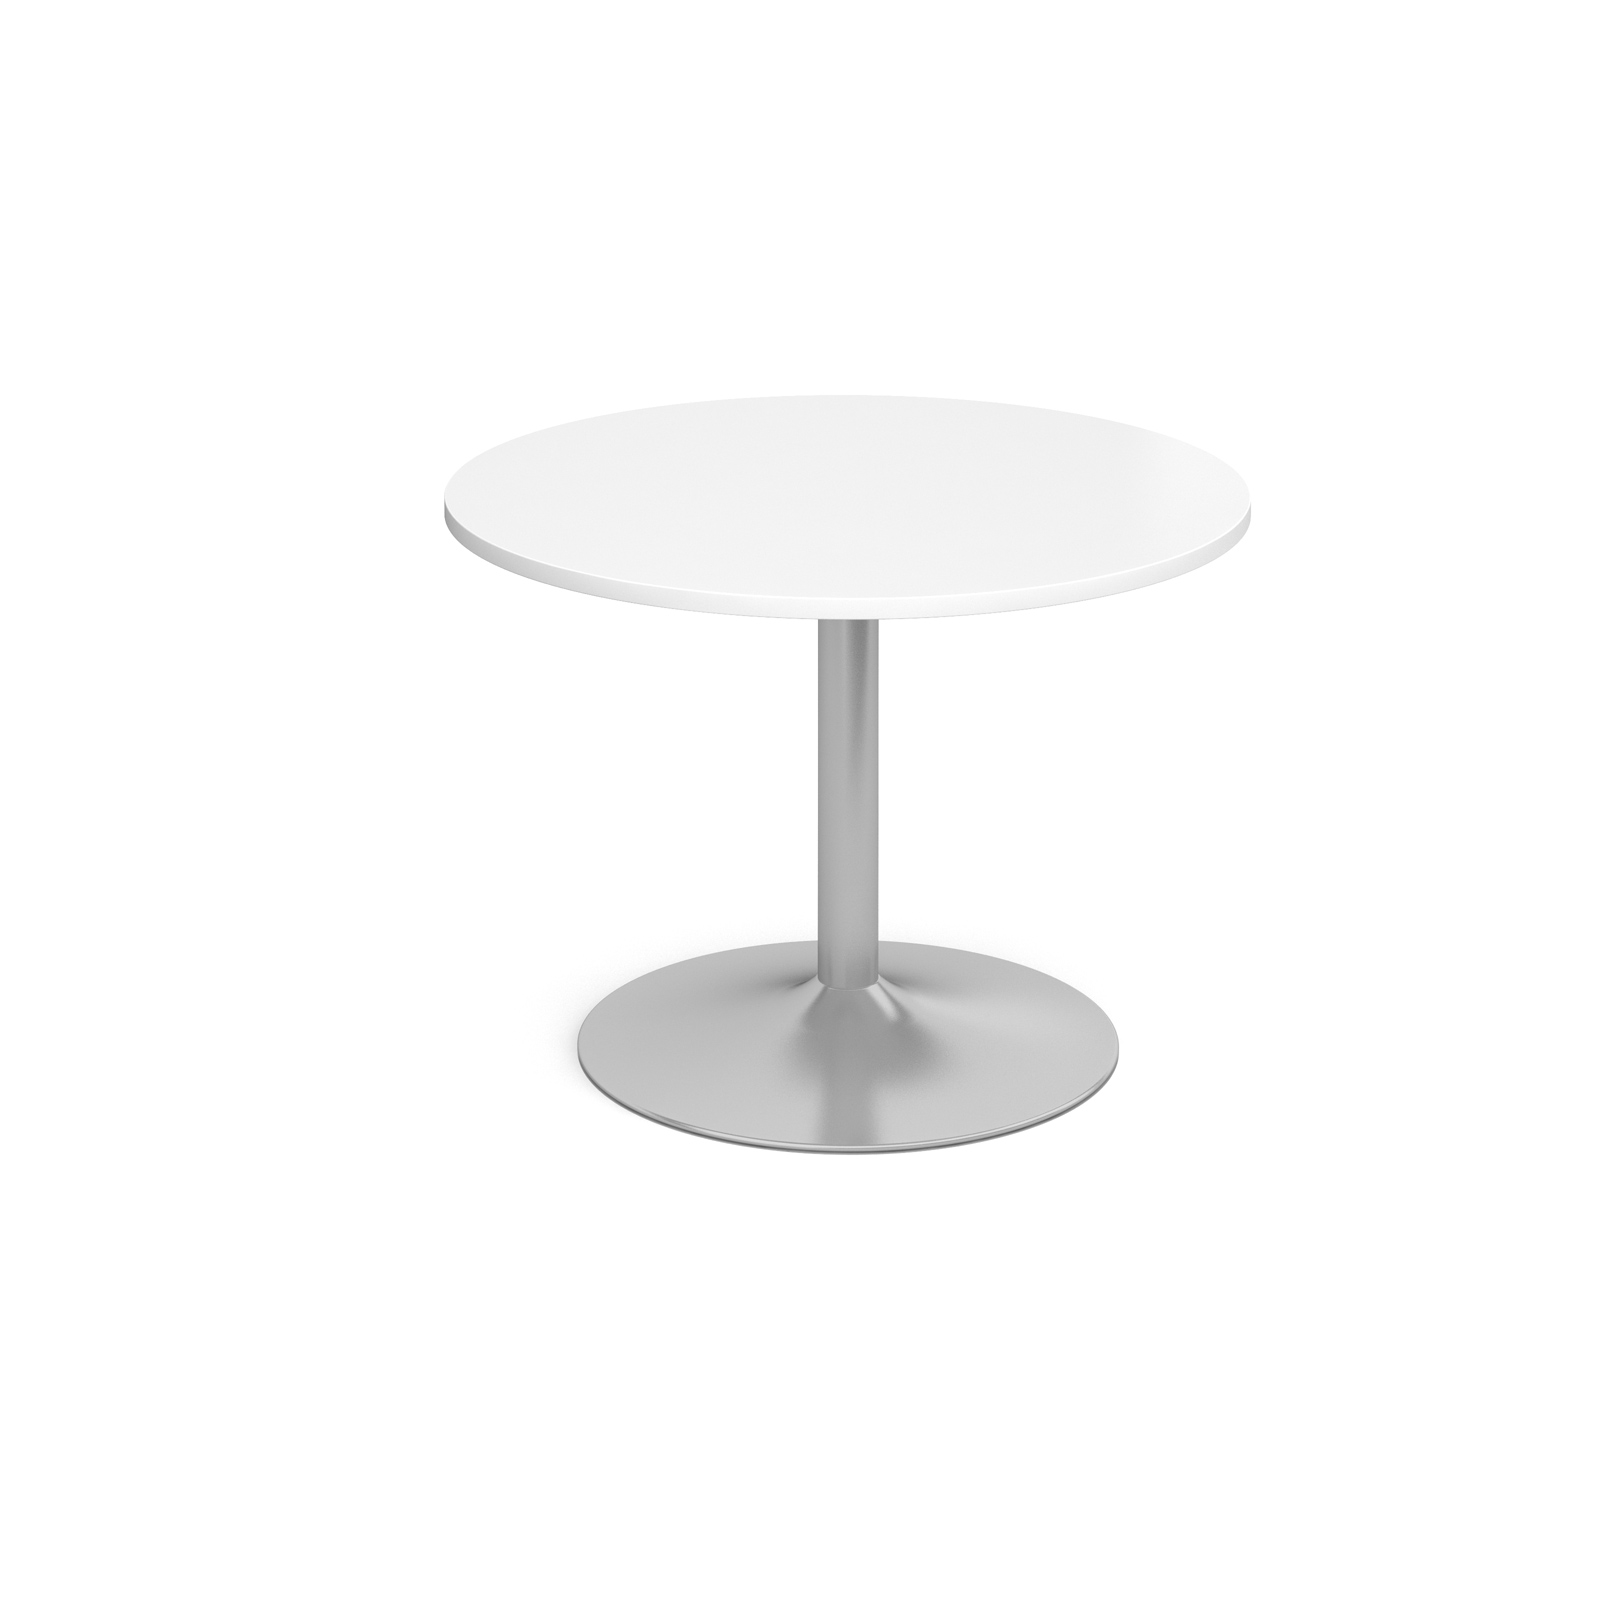 1000 Dia Circular Trumpet Base Boardroom Table 25mm Top - White